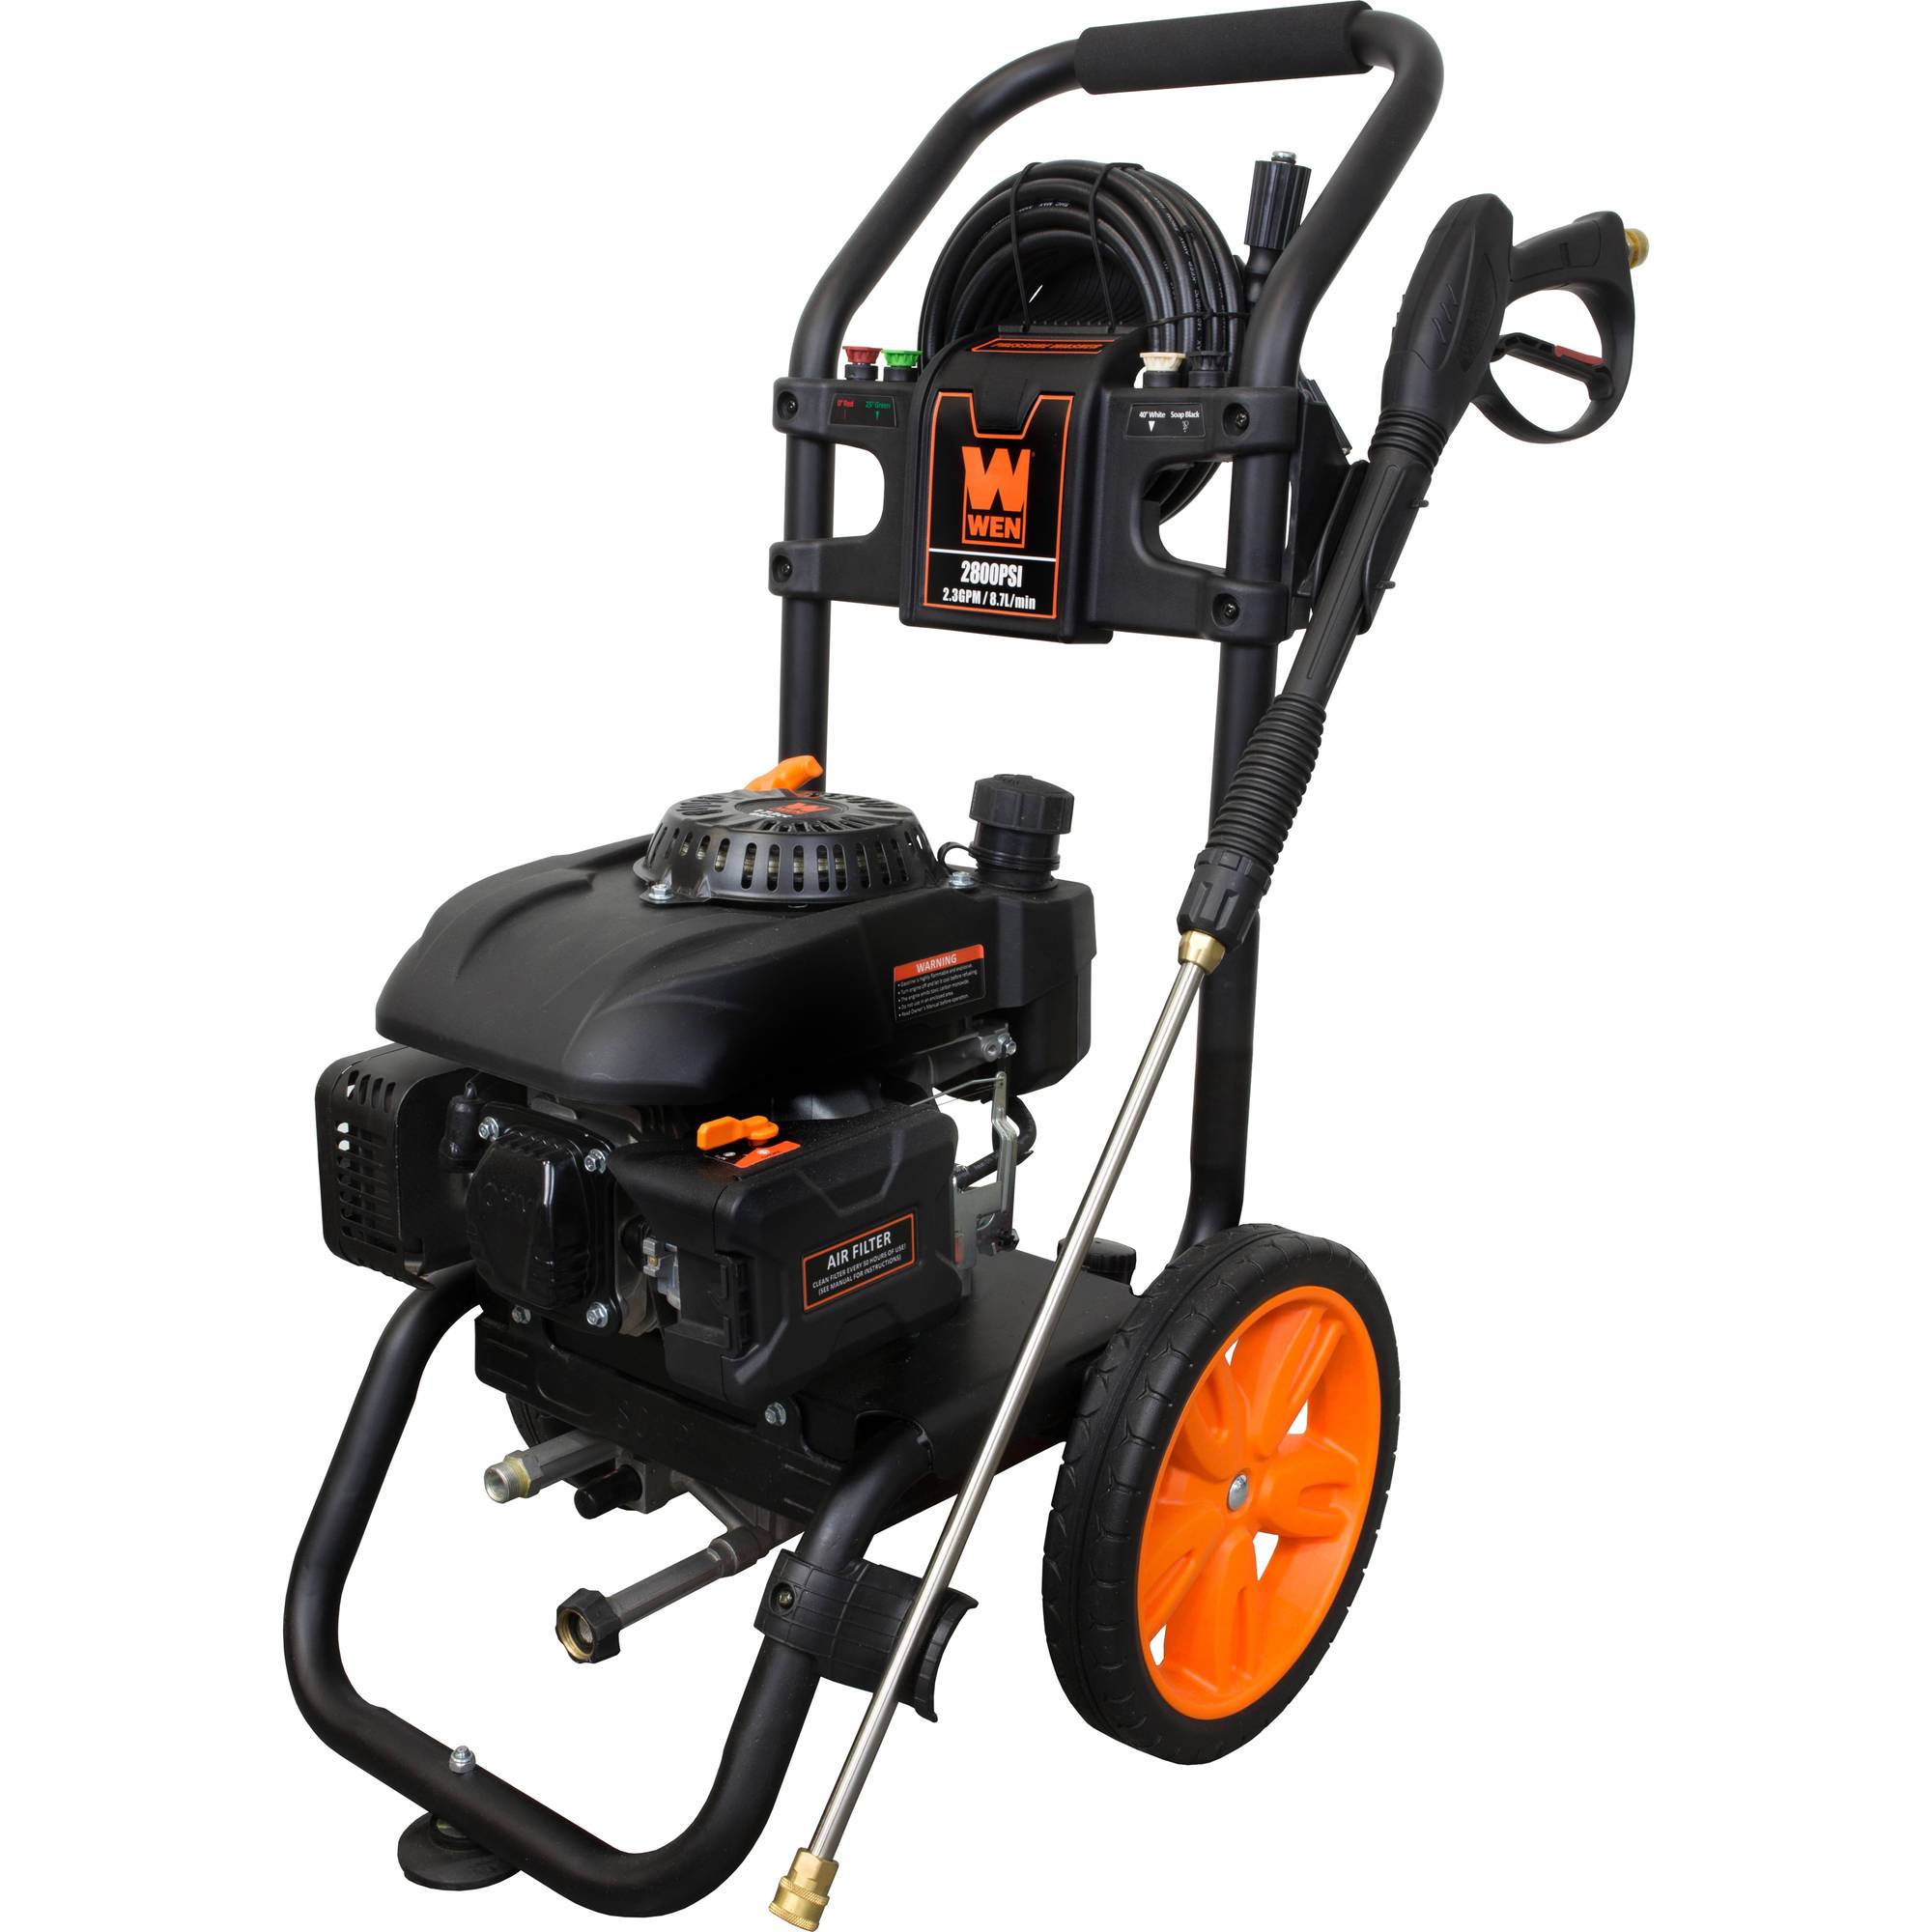 WEN 2800 PSI Gas Pressure Washer, CARB Compliant